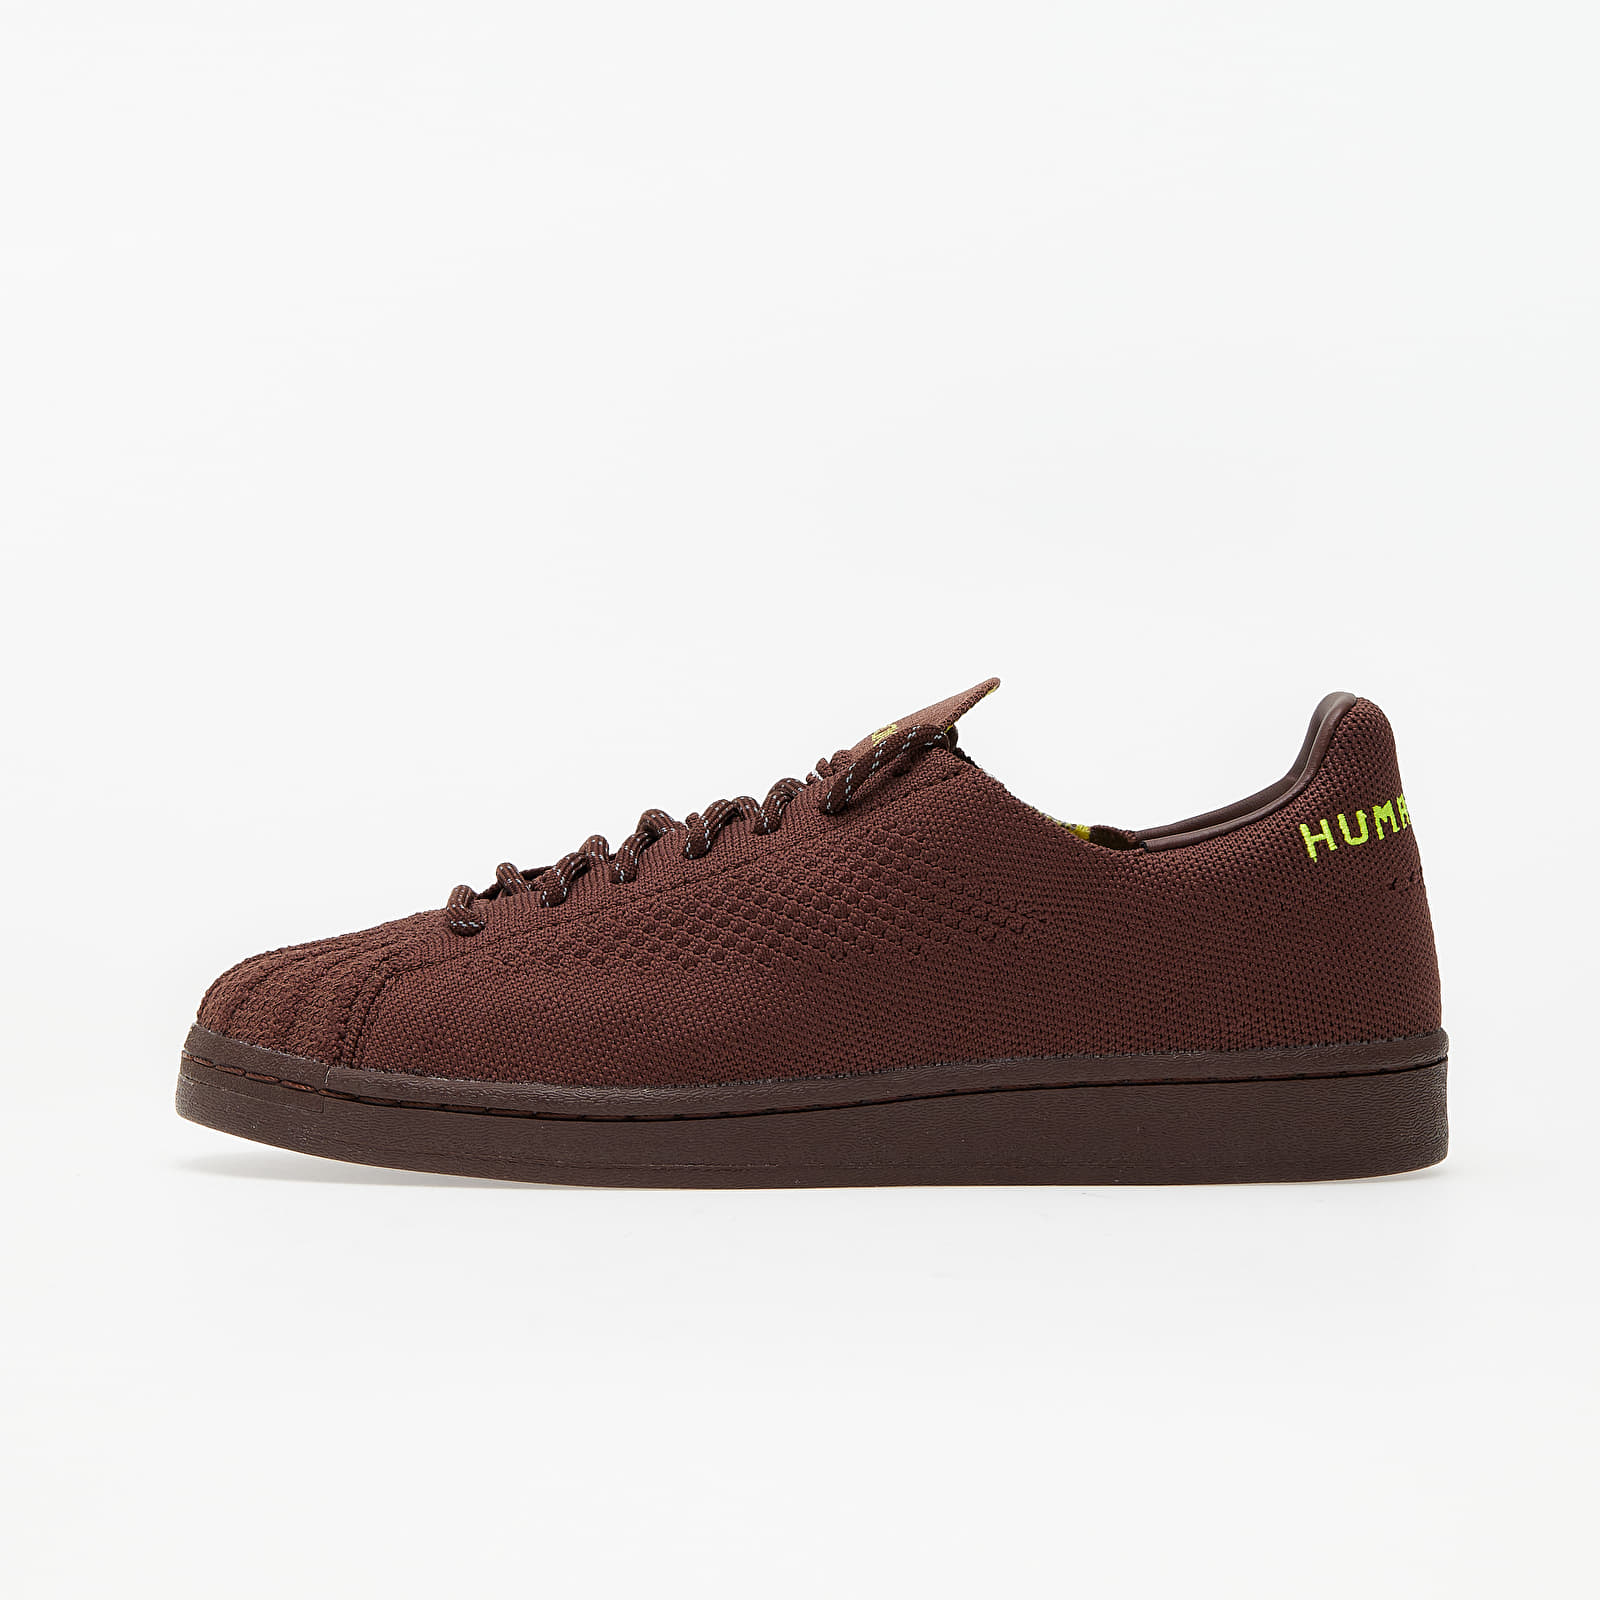 Încălțăminte și sneakerși pentru bărbați adidas x Pharrell Williams Superstar Pk Aurora Burn/ Bright Yellow/ Core Brown